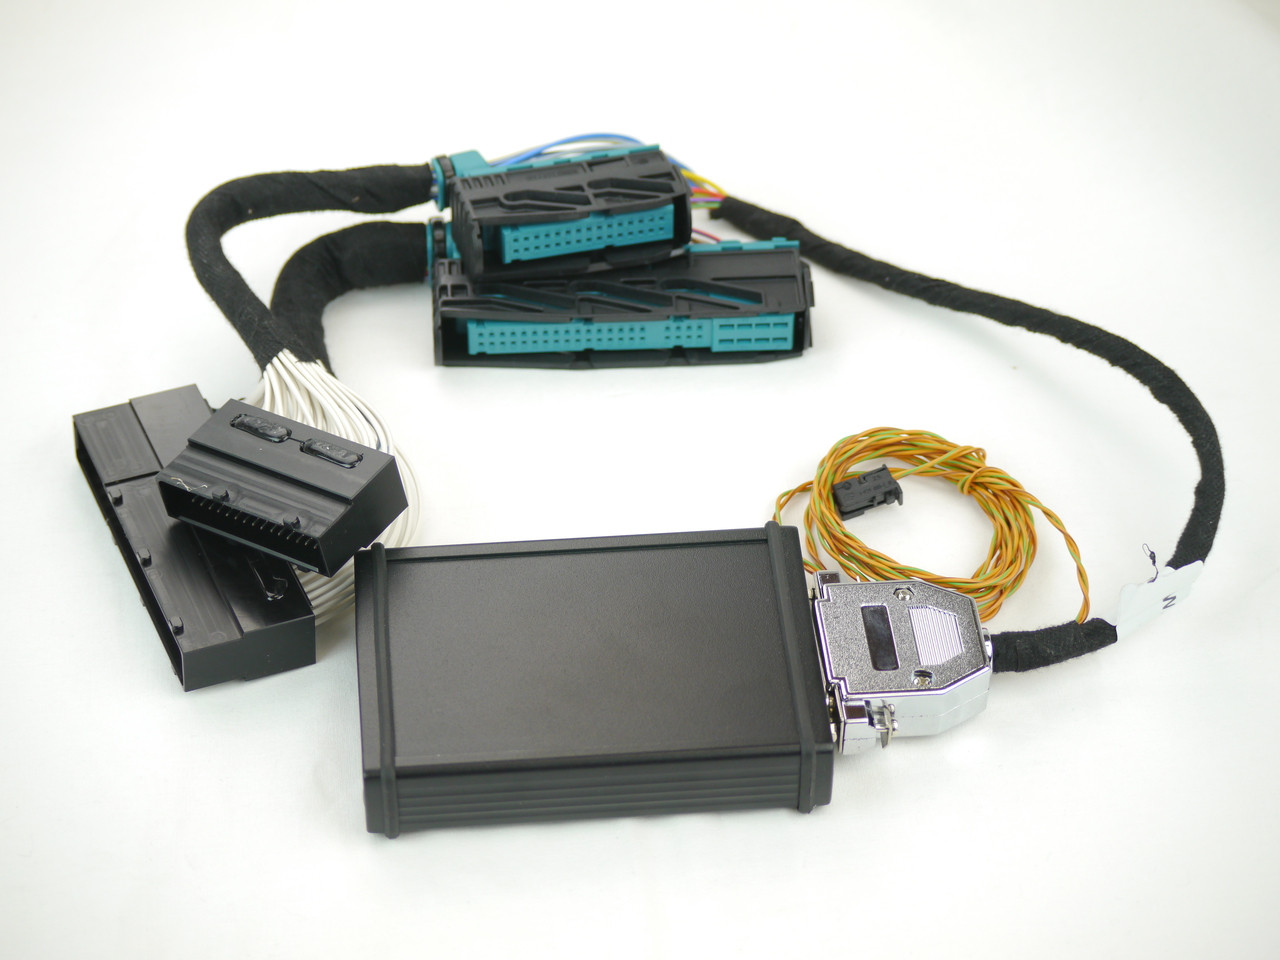 LoMo M1 Lowering Module for W166 GLE and C292 GLE Coupe